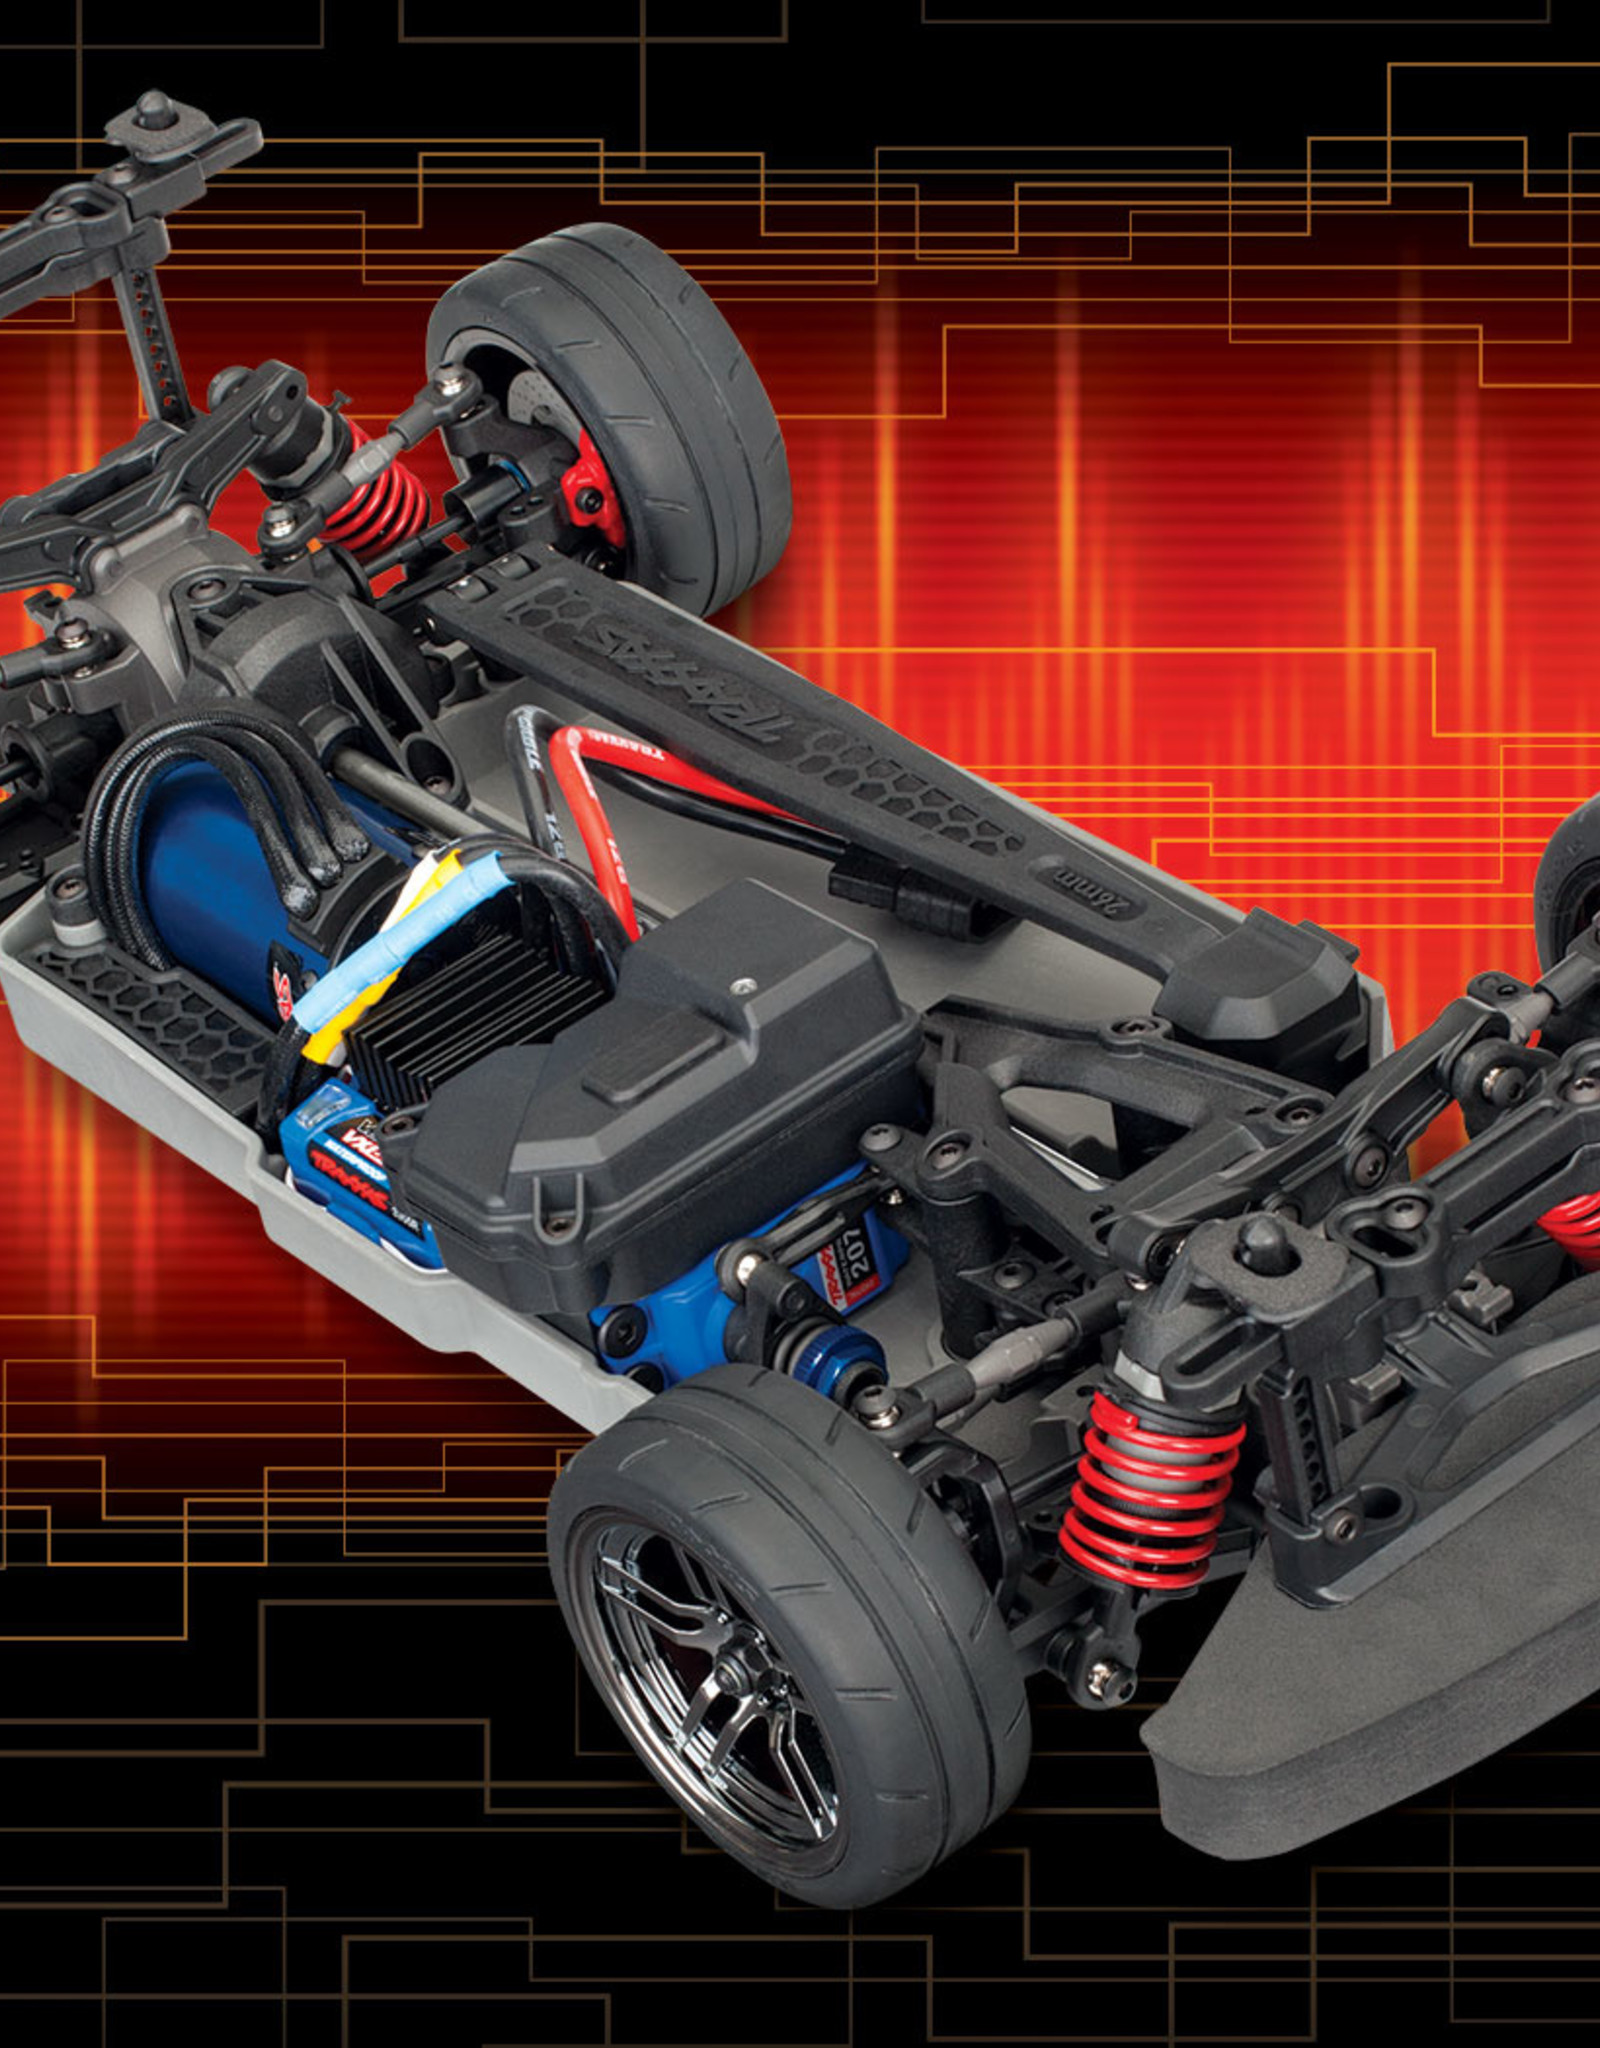 Traxxas Traxxas 4-Tec 2.0 VXL AWD Chassis, 1/10 Scale, Fully-Assembled, Waterproof, and with TQi 2.4GHz Radio System, Traxxas Stability Management (TSM), and Velineon Brushless Power System